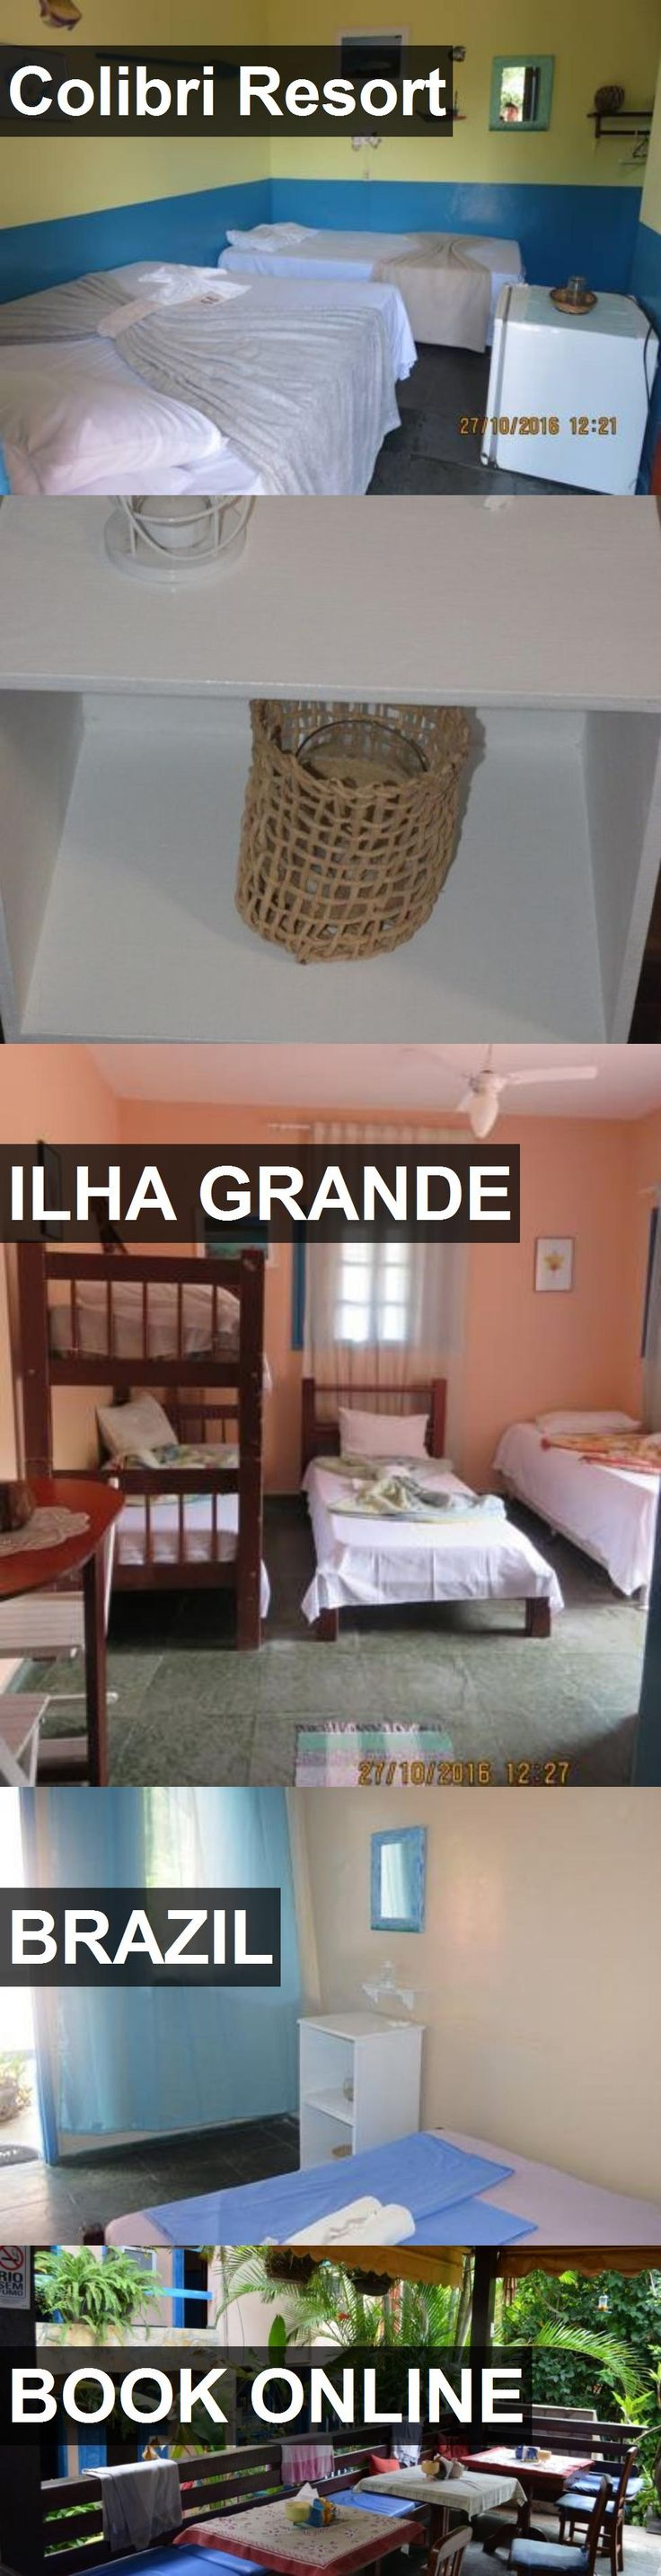 Hotel Colibri Resort in Ilha Grande, Brazil. For more information, photos, reviews and best prices please follow the link. #Brazil #IlhaGrande #travel #vacation #hotel